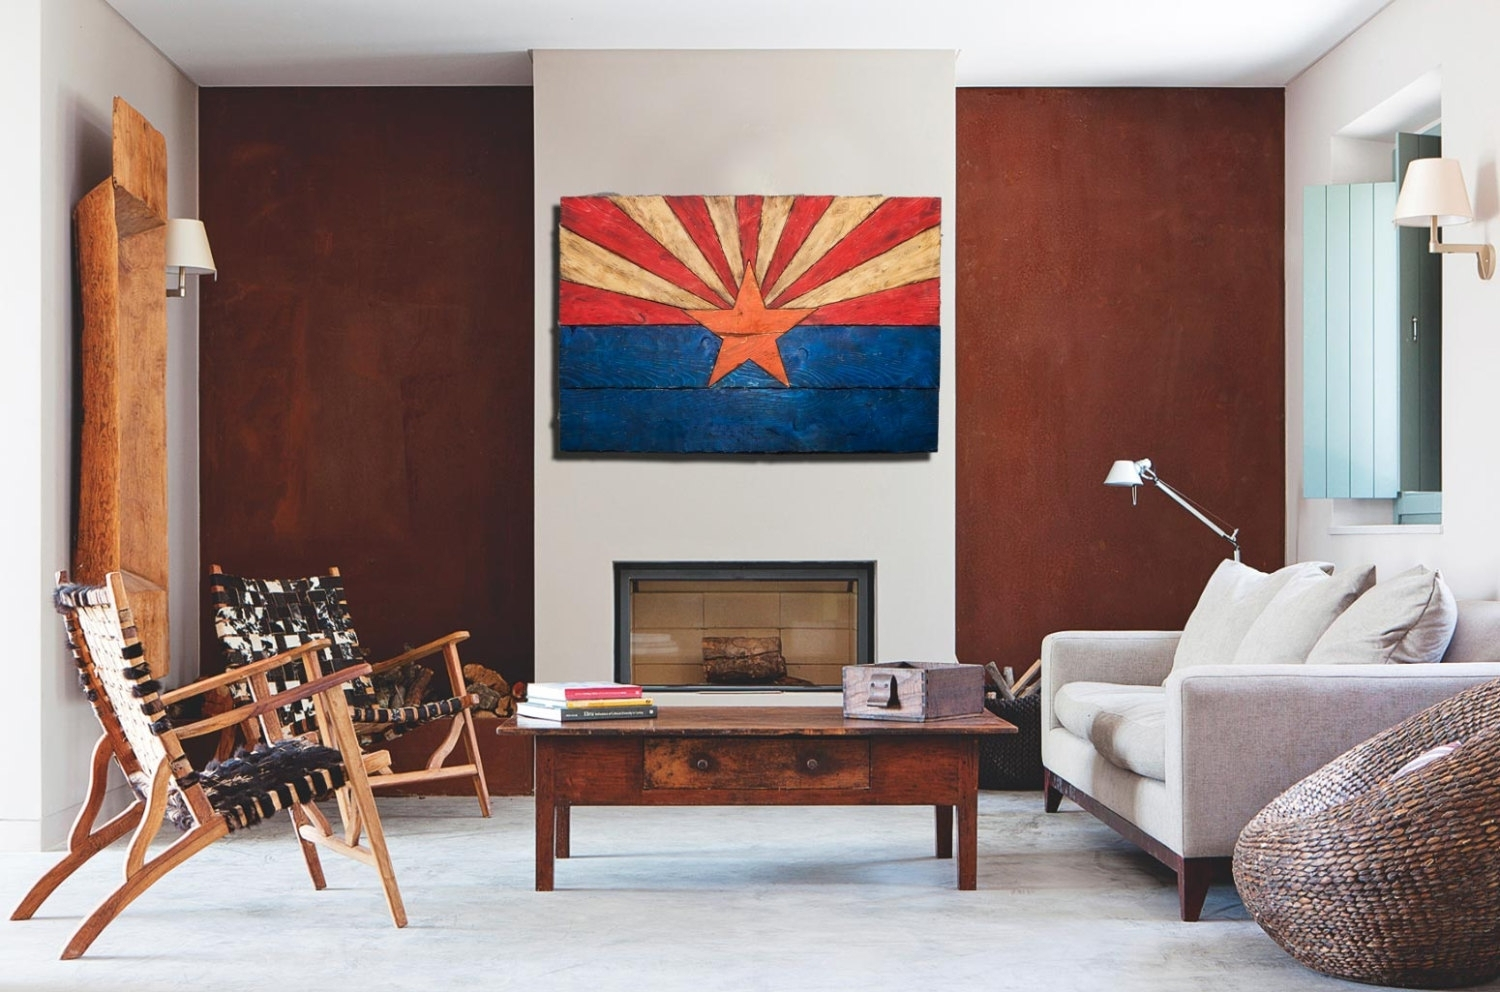 Arizona Flag, Handmade, Distressed Painted Wood, Vintage, Art Intended For Most Popular Arizona Wall Art (View 8 of 20)